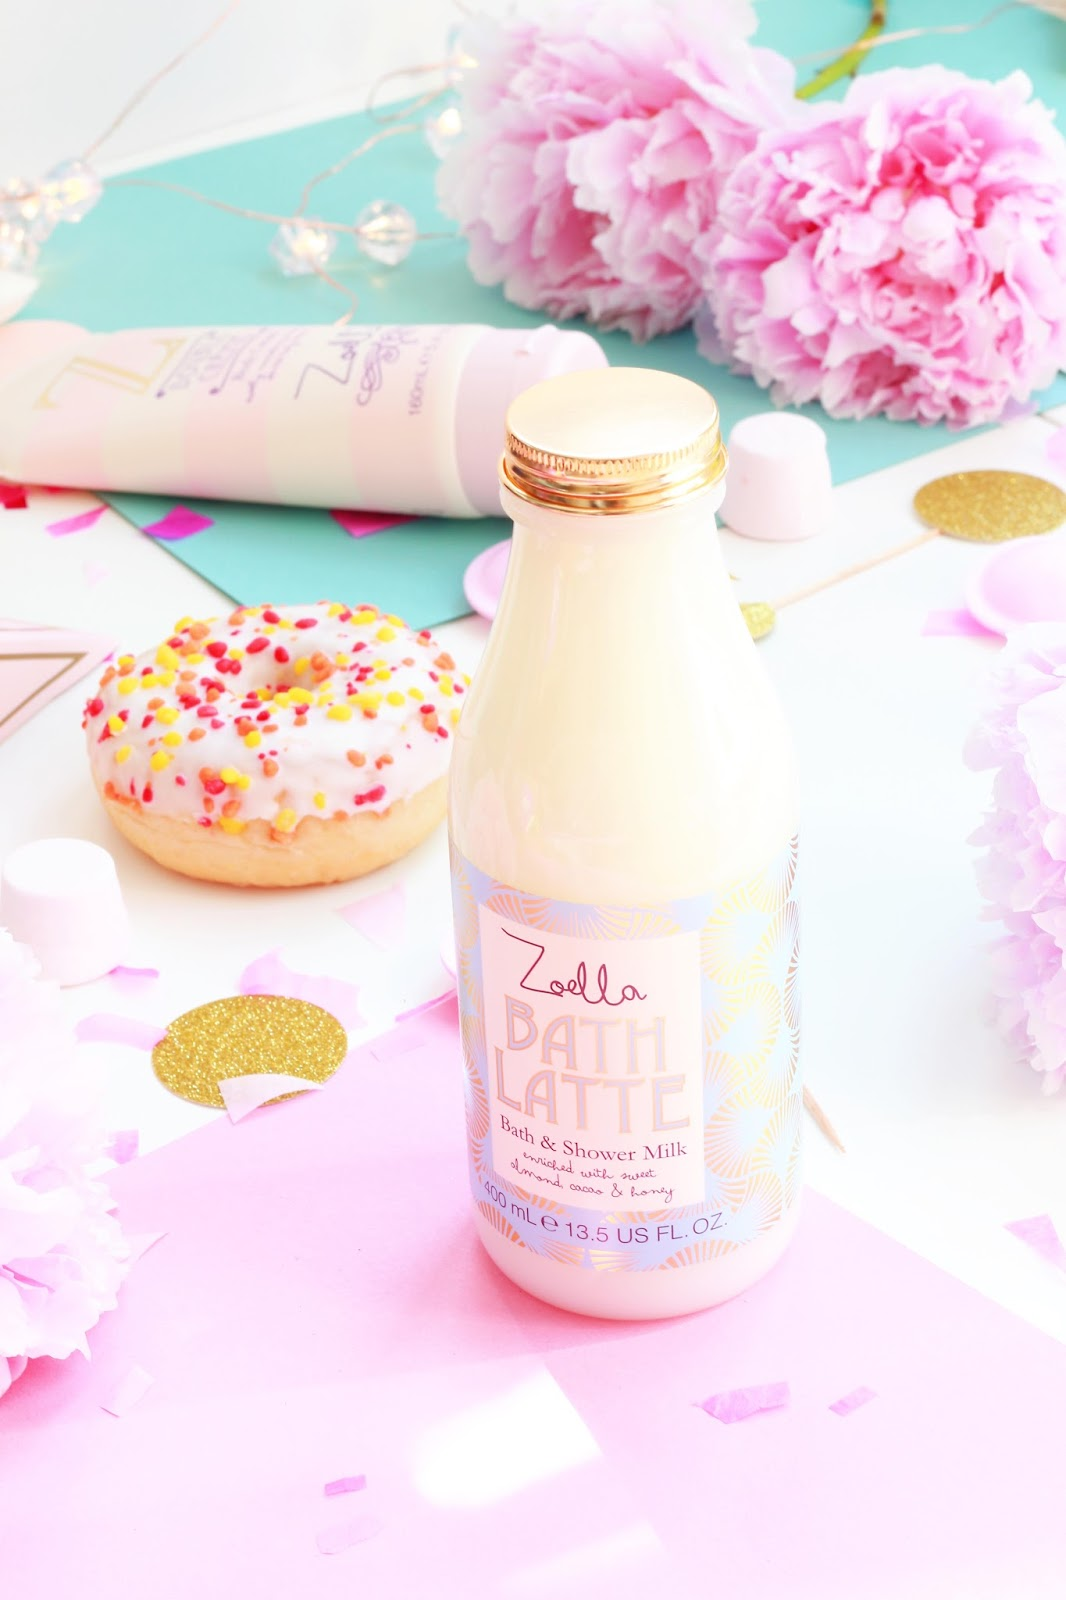 Zoella roller skates - From Using The Products I Love The Bath Latte The Most Mainly Because I Ve Never Seen Anything Like It Before I Love The Packaging And The Idea Of It